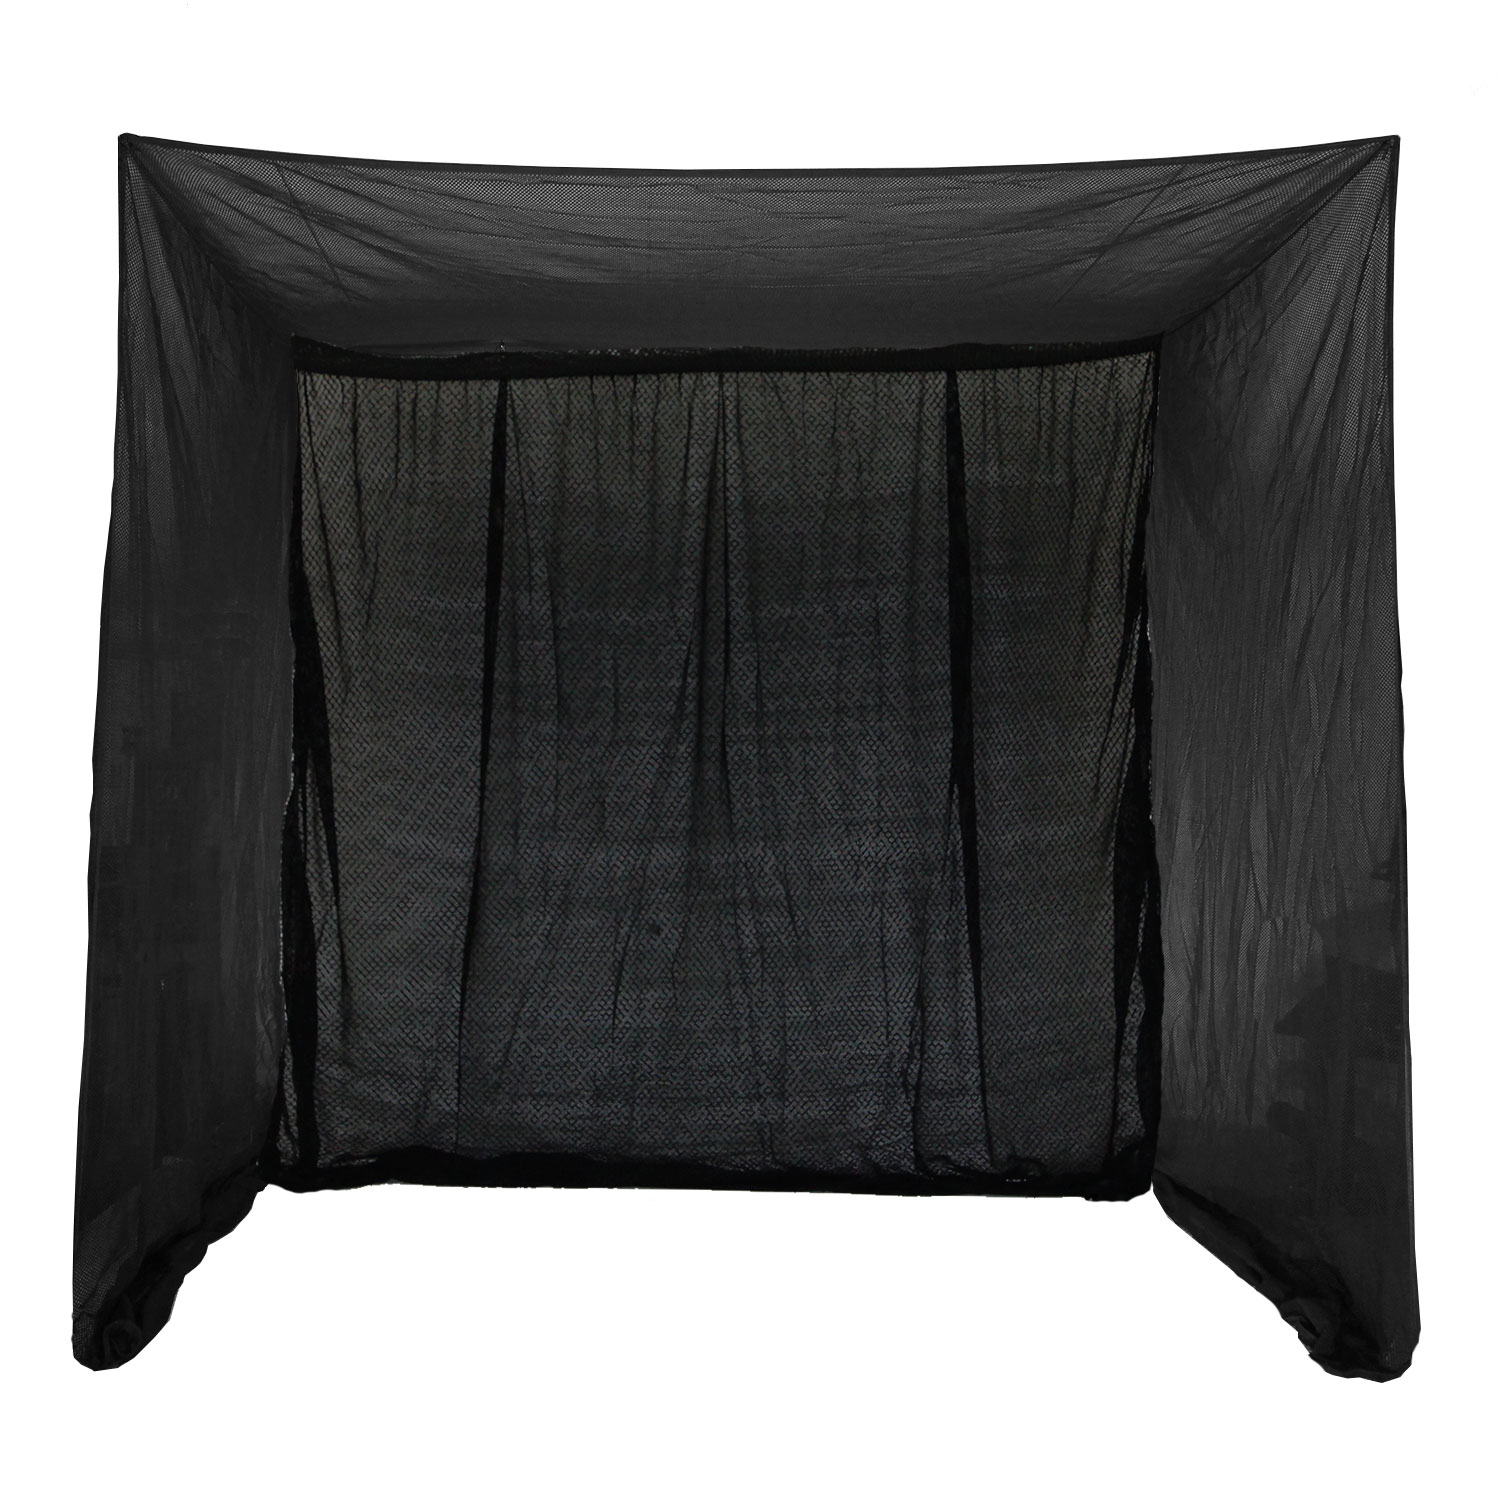 Packaging or Promotional image for Cimarron 5x10x10 Clubhouse Archery Golf Net